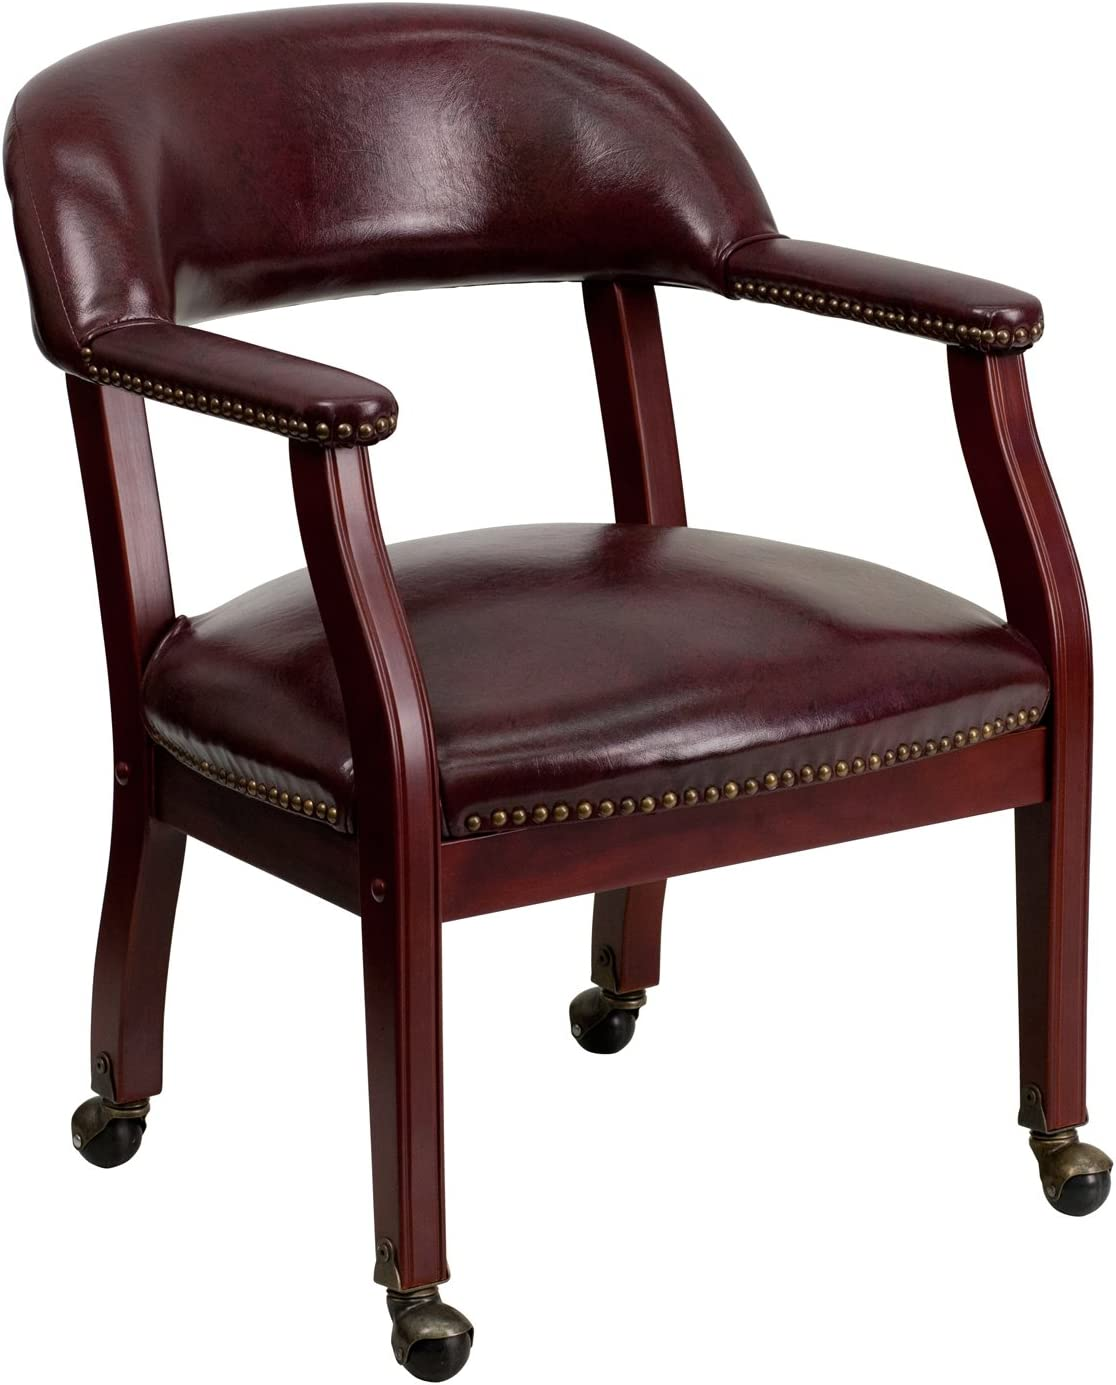 Flash Furniture Oxblood Vinyl Luxurious Conference Chair with Casters [B-Z100-OXBLOOD-GG]